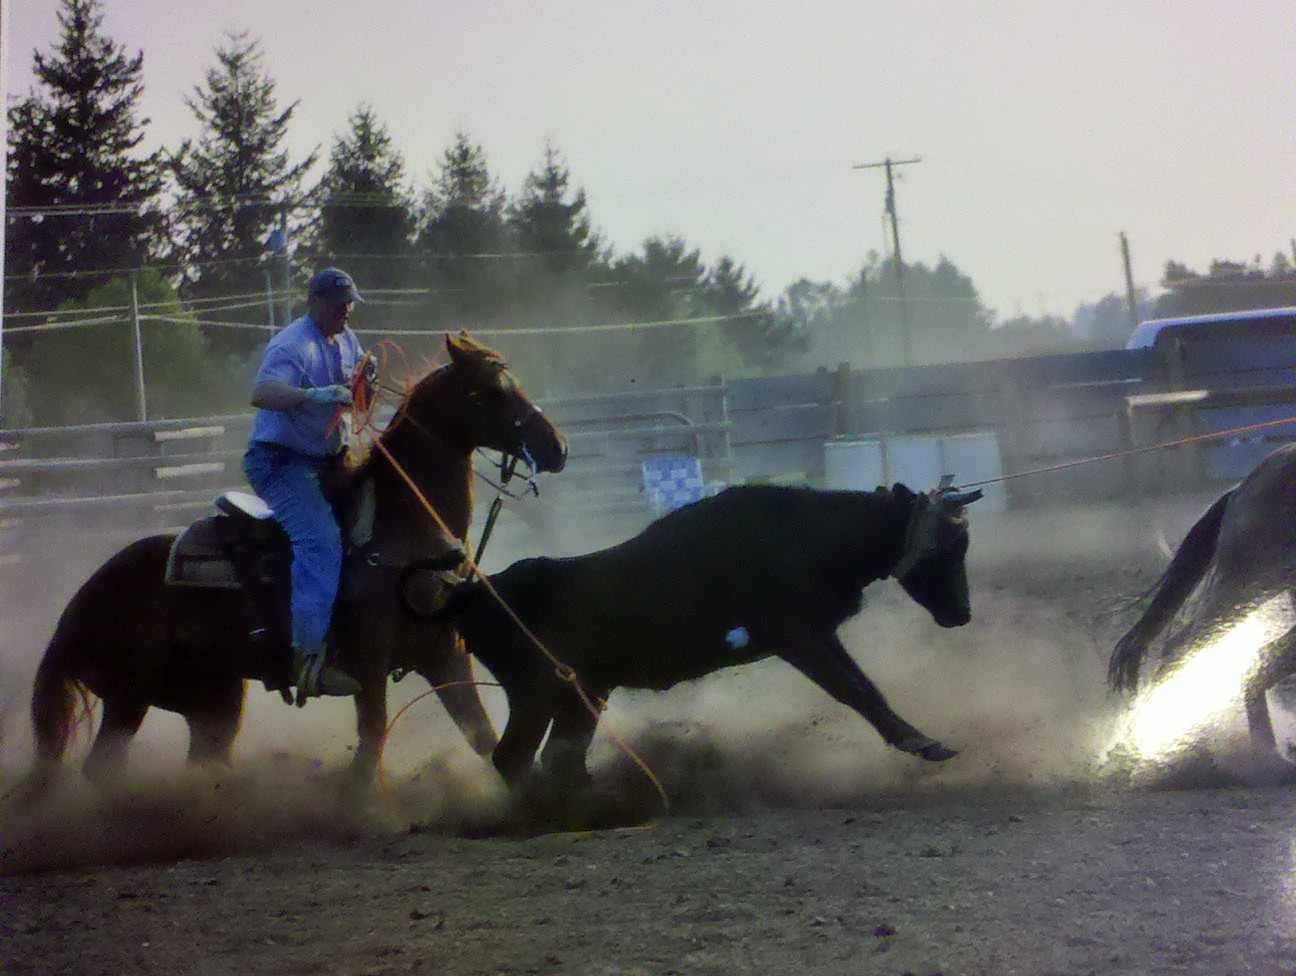 I mostly team rope for fun now. But there was a time I traveled every weekend in the summer and roped in big jackpot ropings and state finals competitions in Washington, Oregon, and Idaho. All of these photos were taken before I started developing cinches and breast collars which is why you don't see them in the photos. I am using all the products I make now in all my activities.